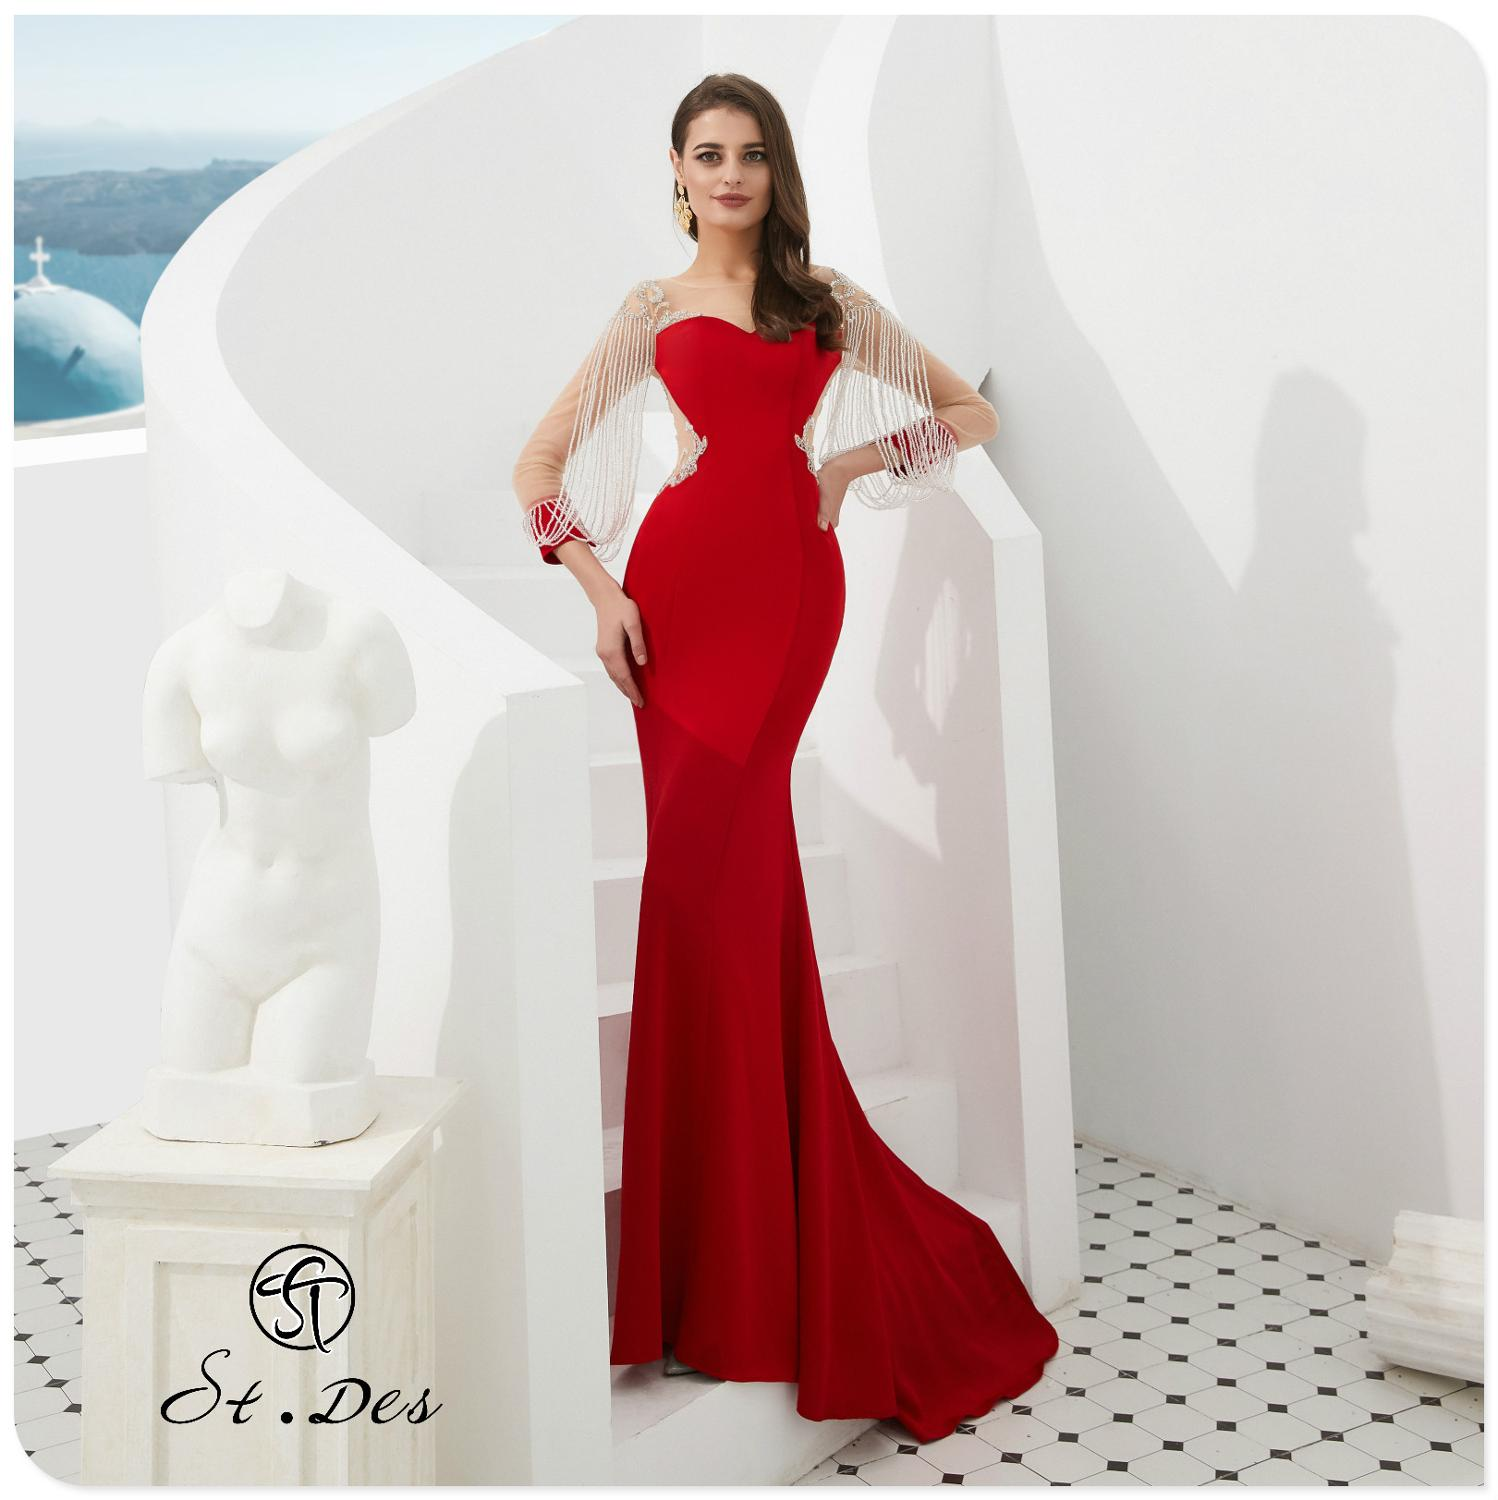 NEW 2020 St.Des Mermaid Russian Red Sweetheart Tassel Beading Full Sleeve Designer Floor Length Evening Dress Party Dress